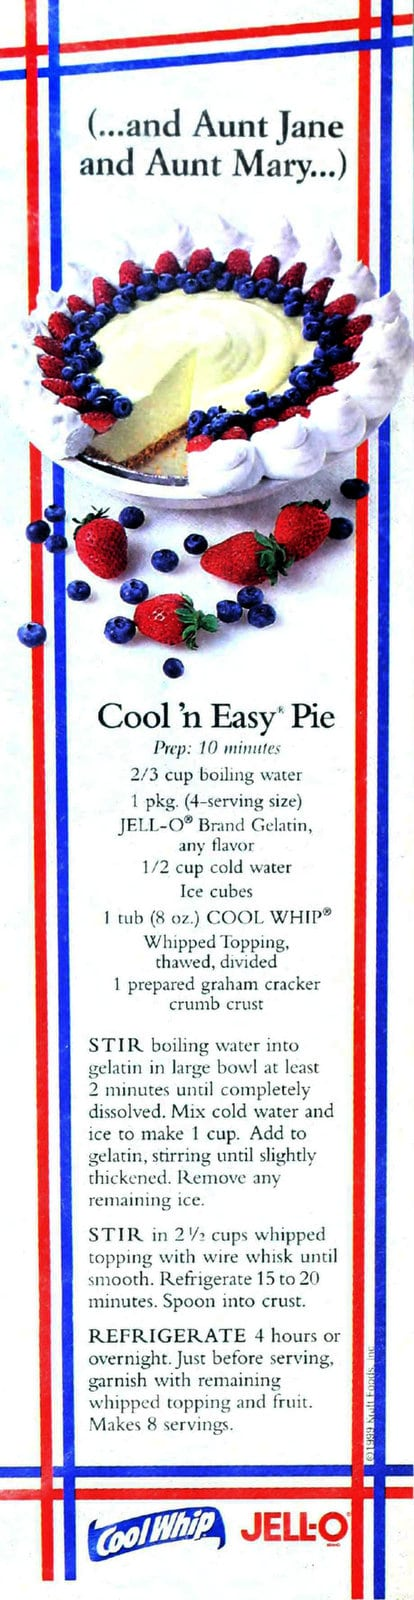 Cool 'n' easy 4th of July pie recipe